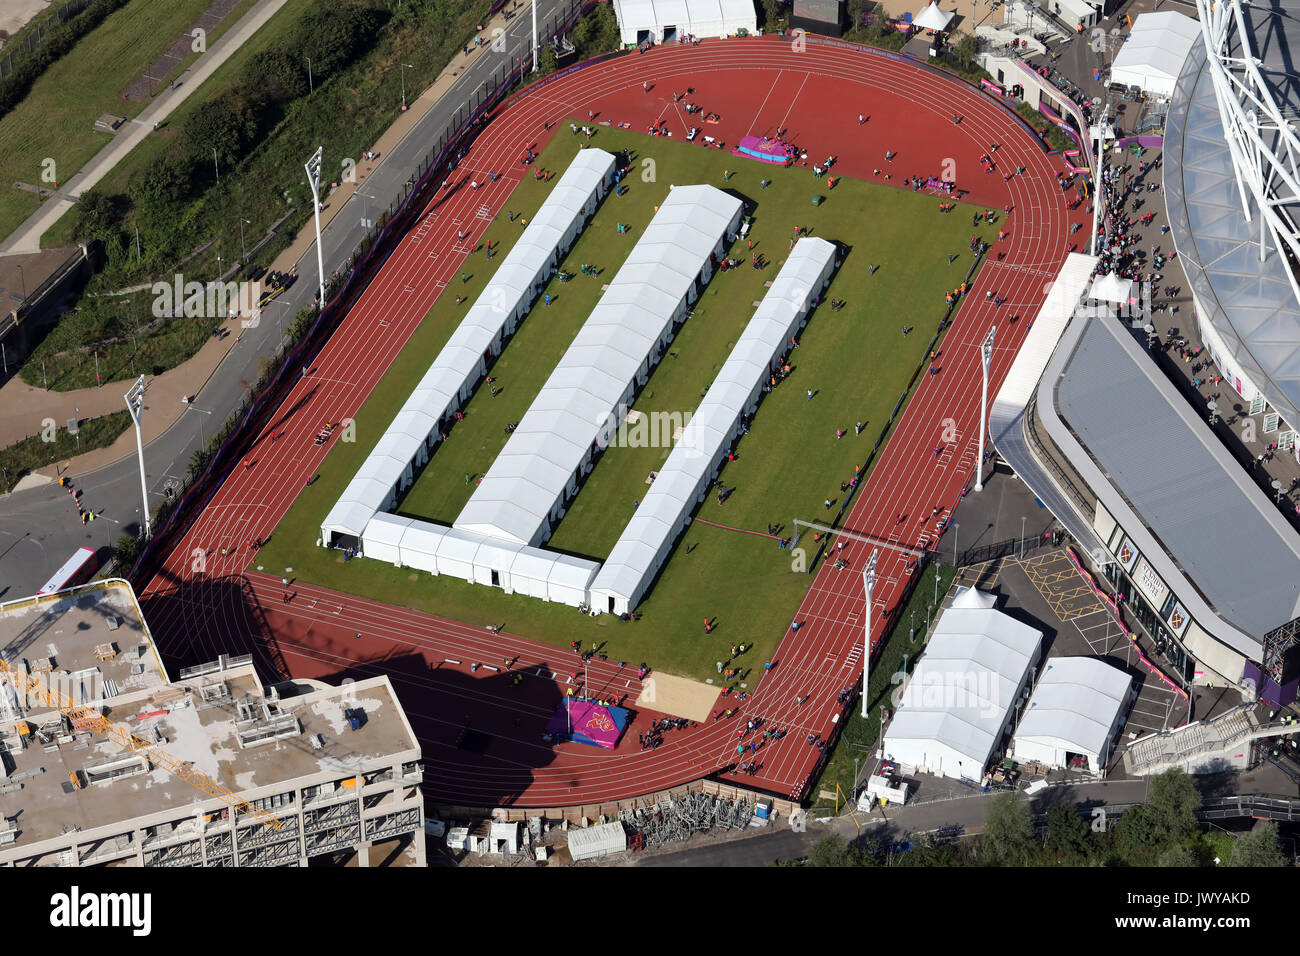 aerial view of the warm up area for athletes for London Stadium, UK - Stock Image